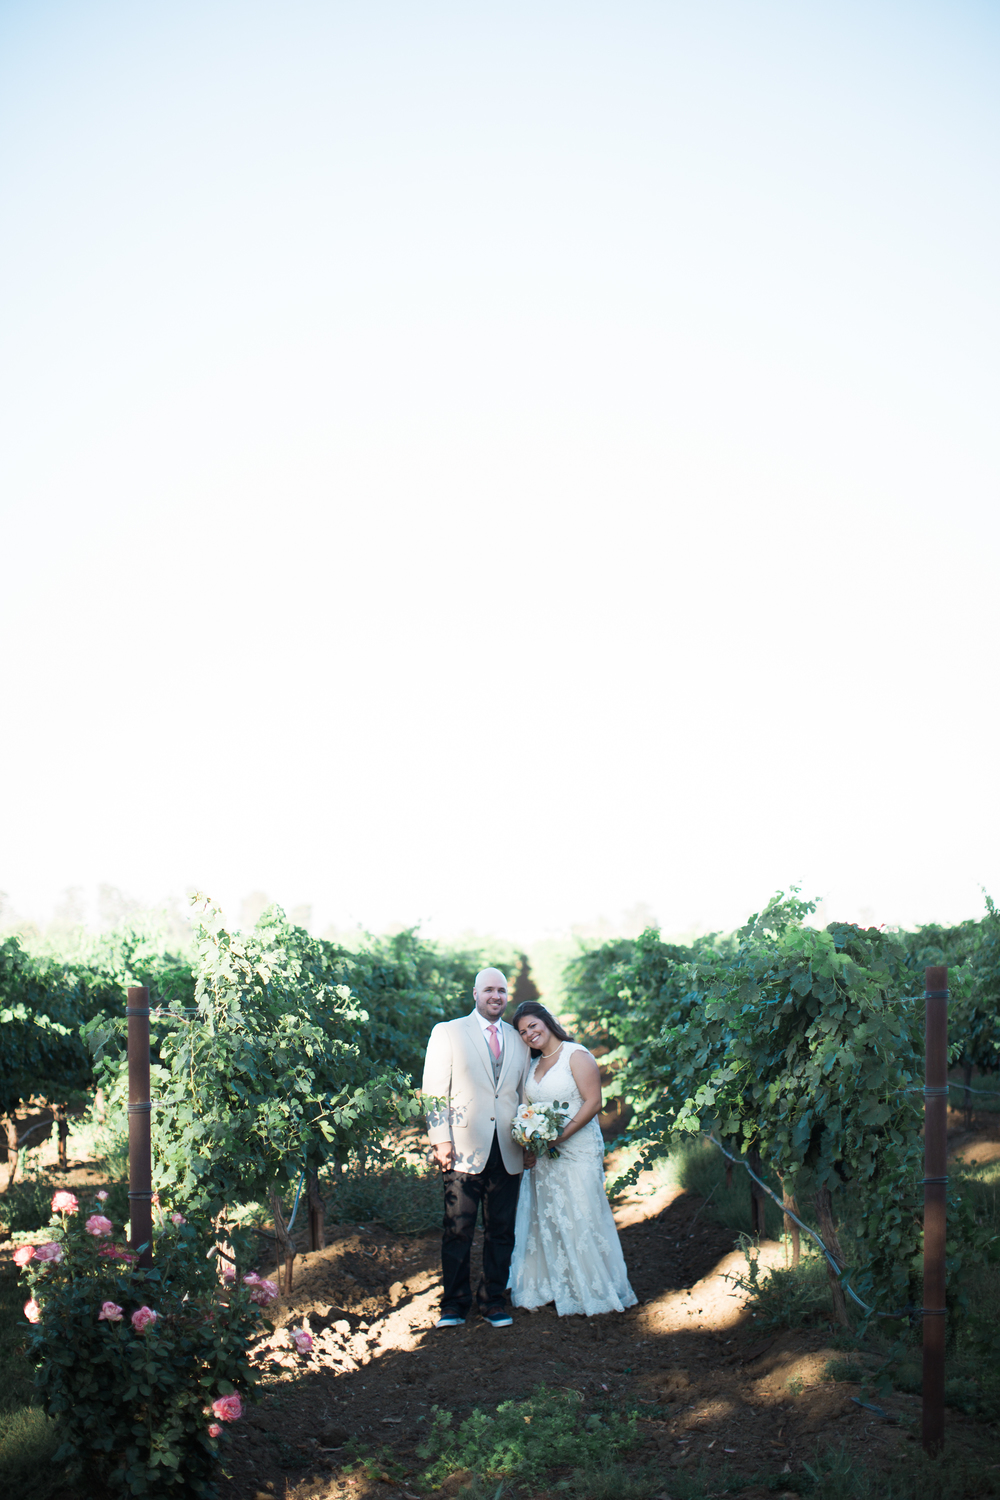 Andrew_and_Michelle_ByronCA_Leer_Vineyards_wedding-86.jpg